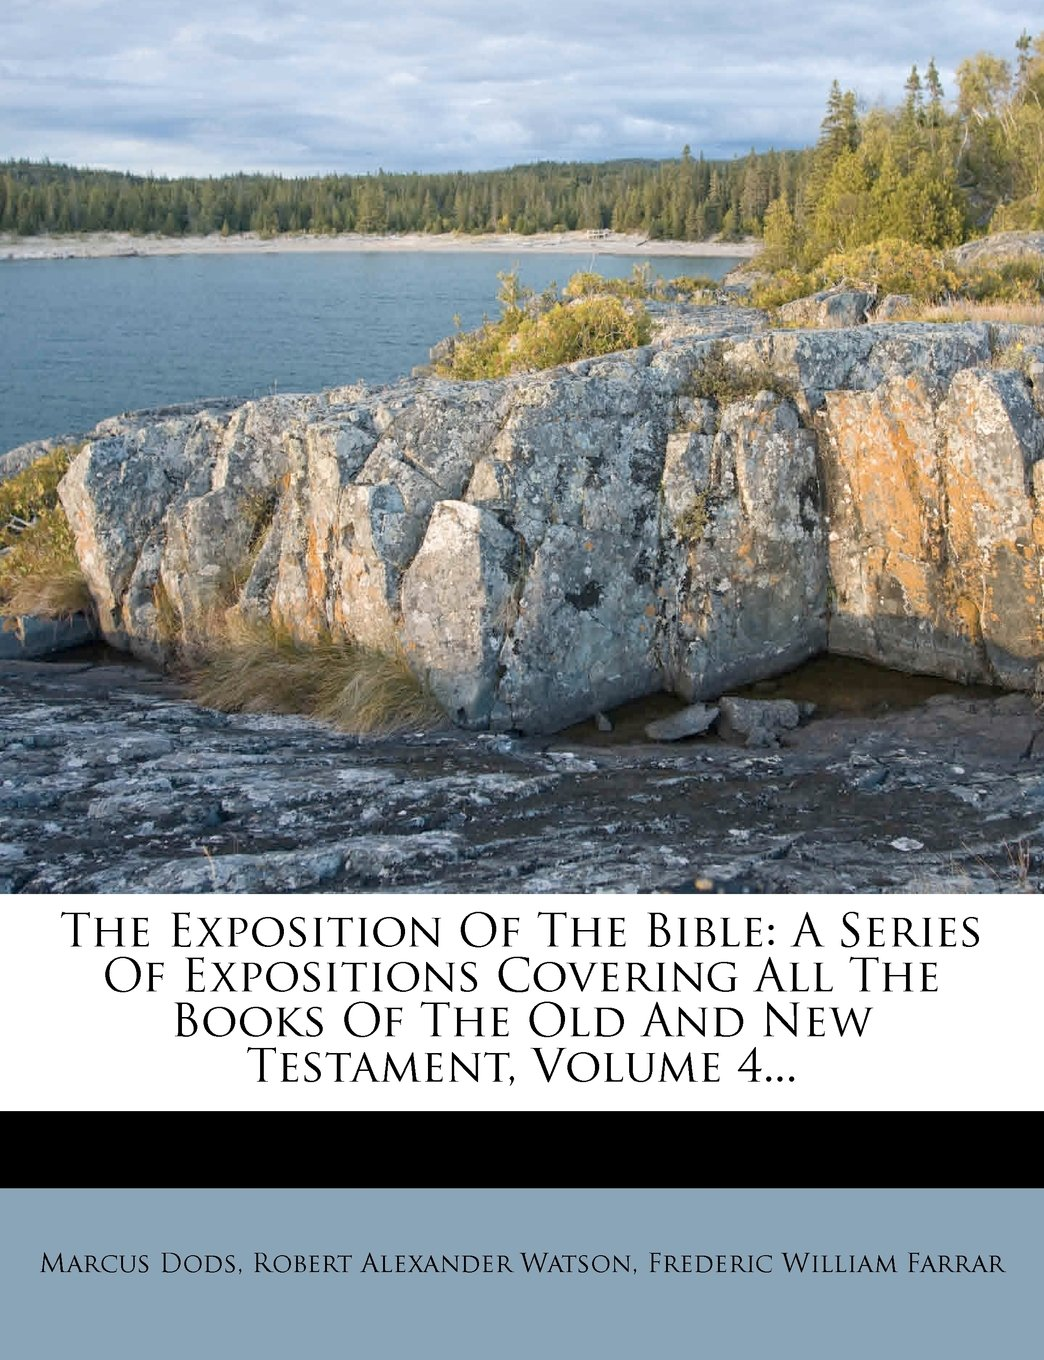 The Exposition Of The Bible: A Series Of Expositions Covering All The Books Of The Old And New Testament, Volume 4... PDF